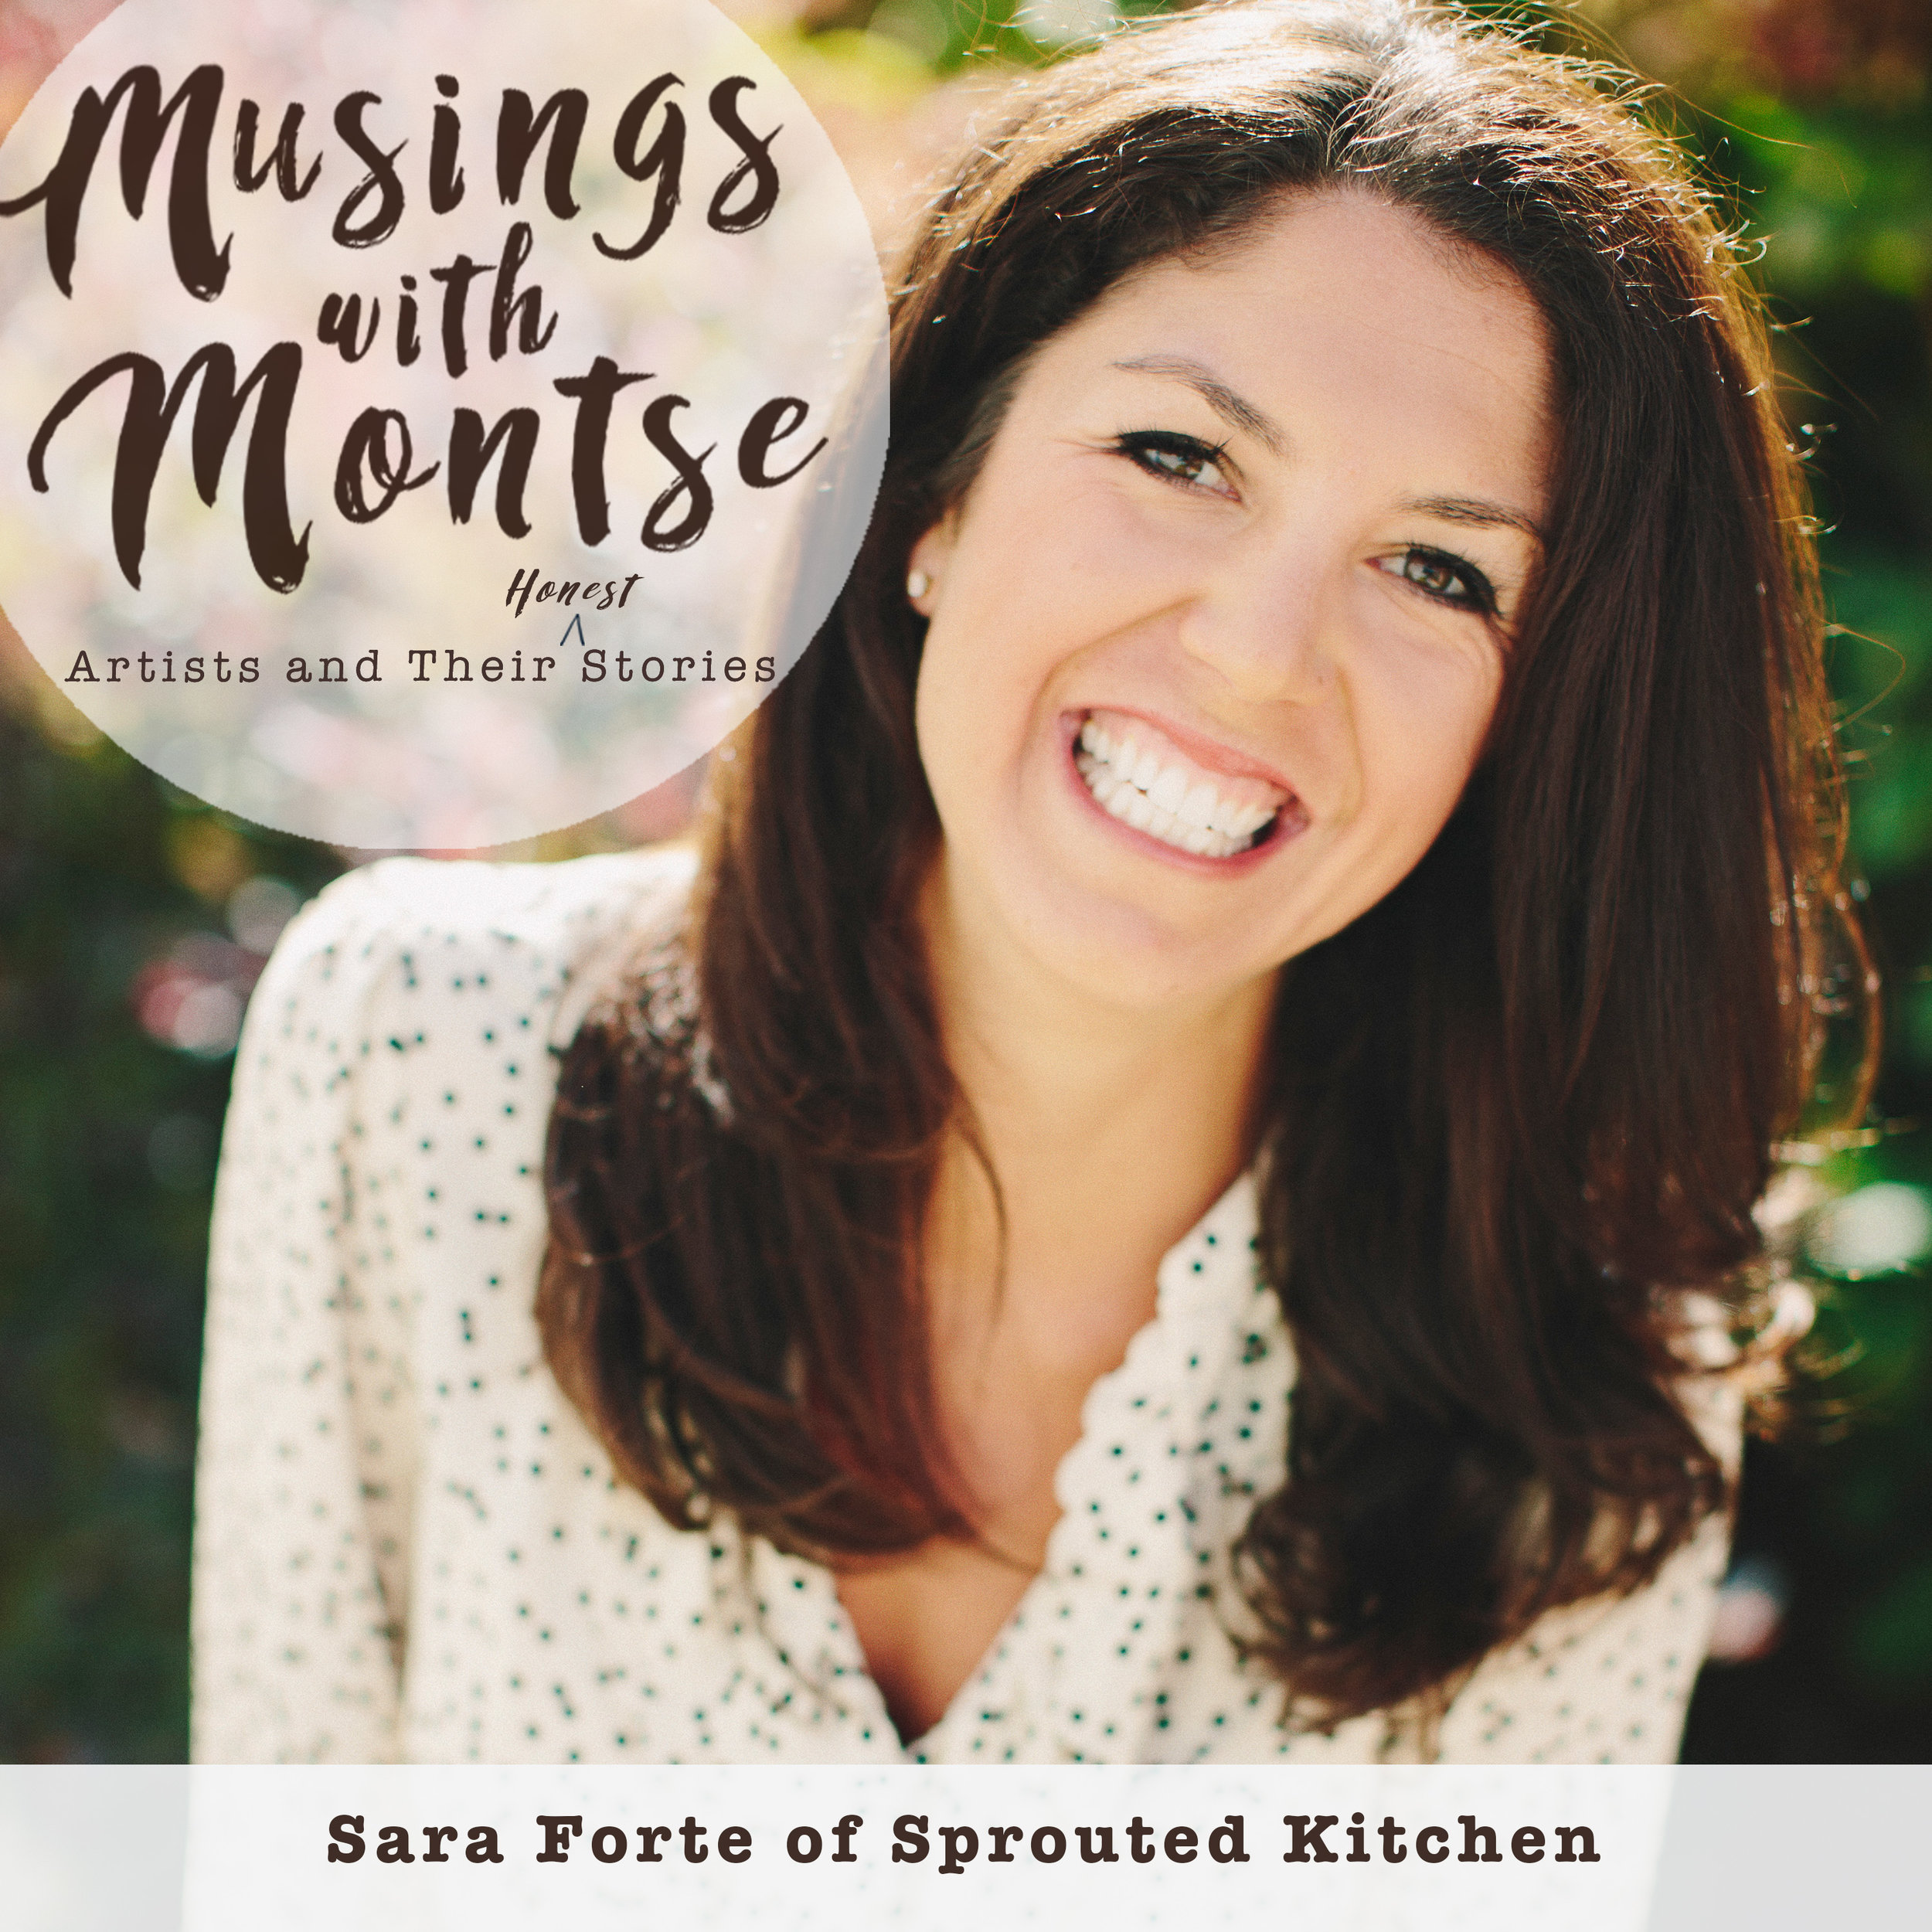 Where to find Sara:   Instagram    Website